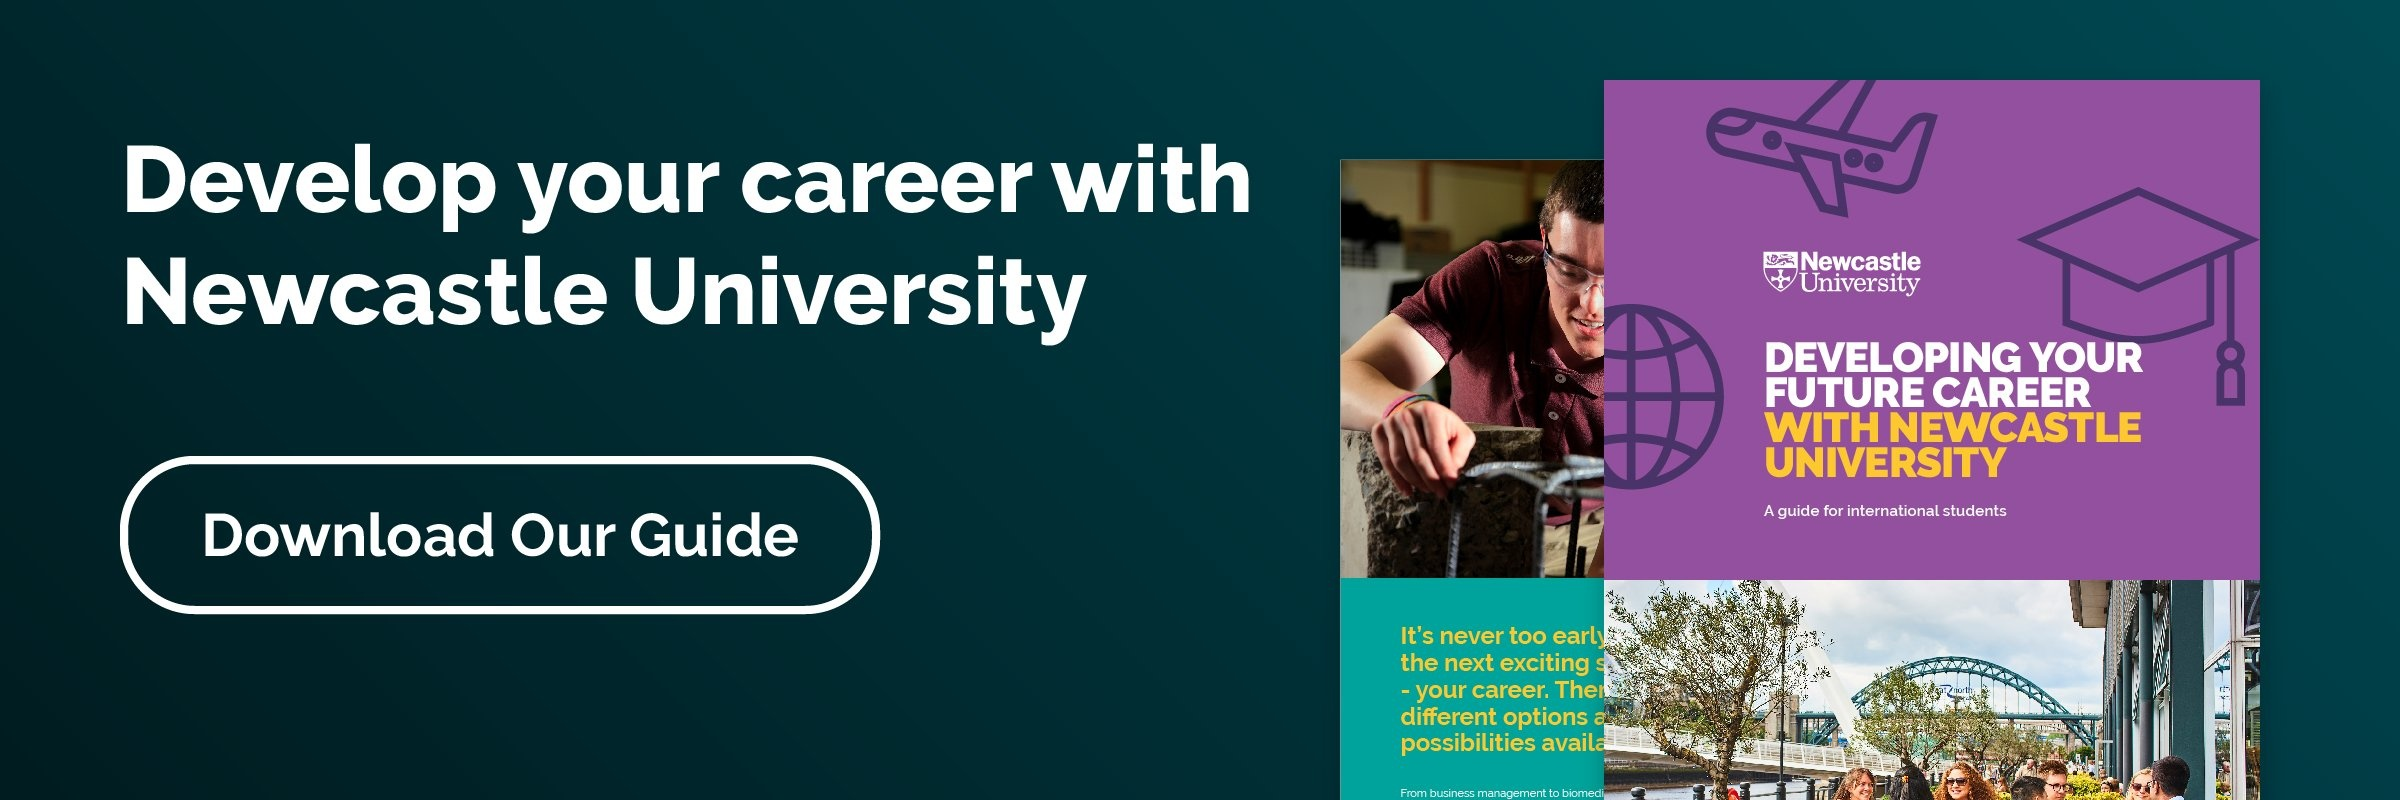 Develop your career with Newcastle University